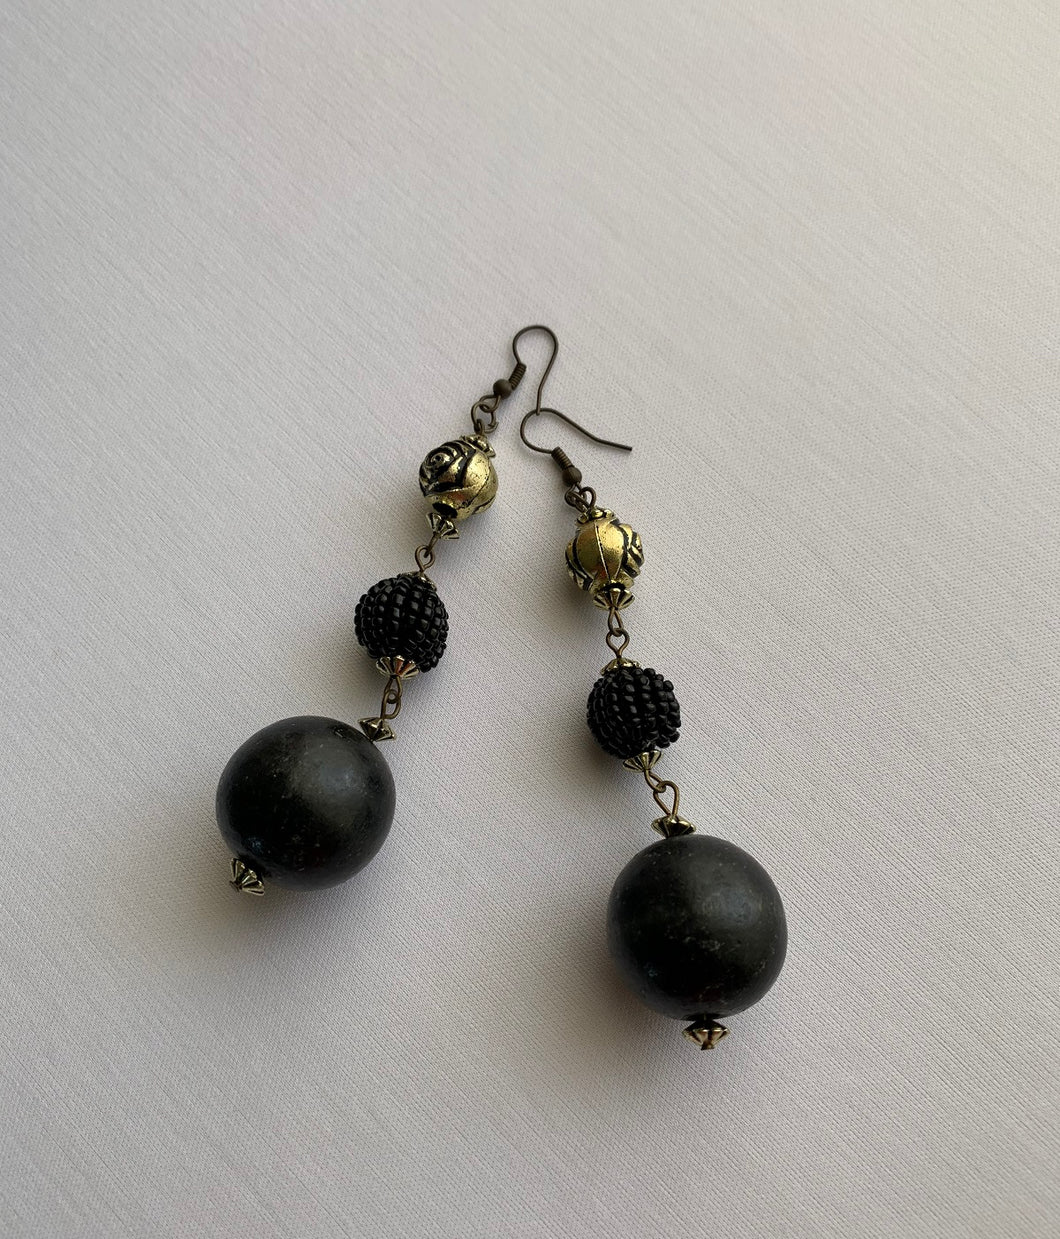 Ana Retro Black Earrings